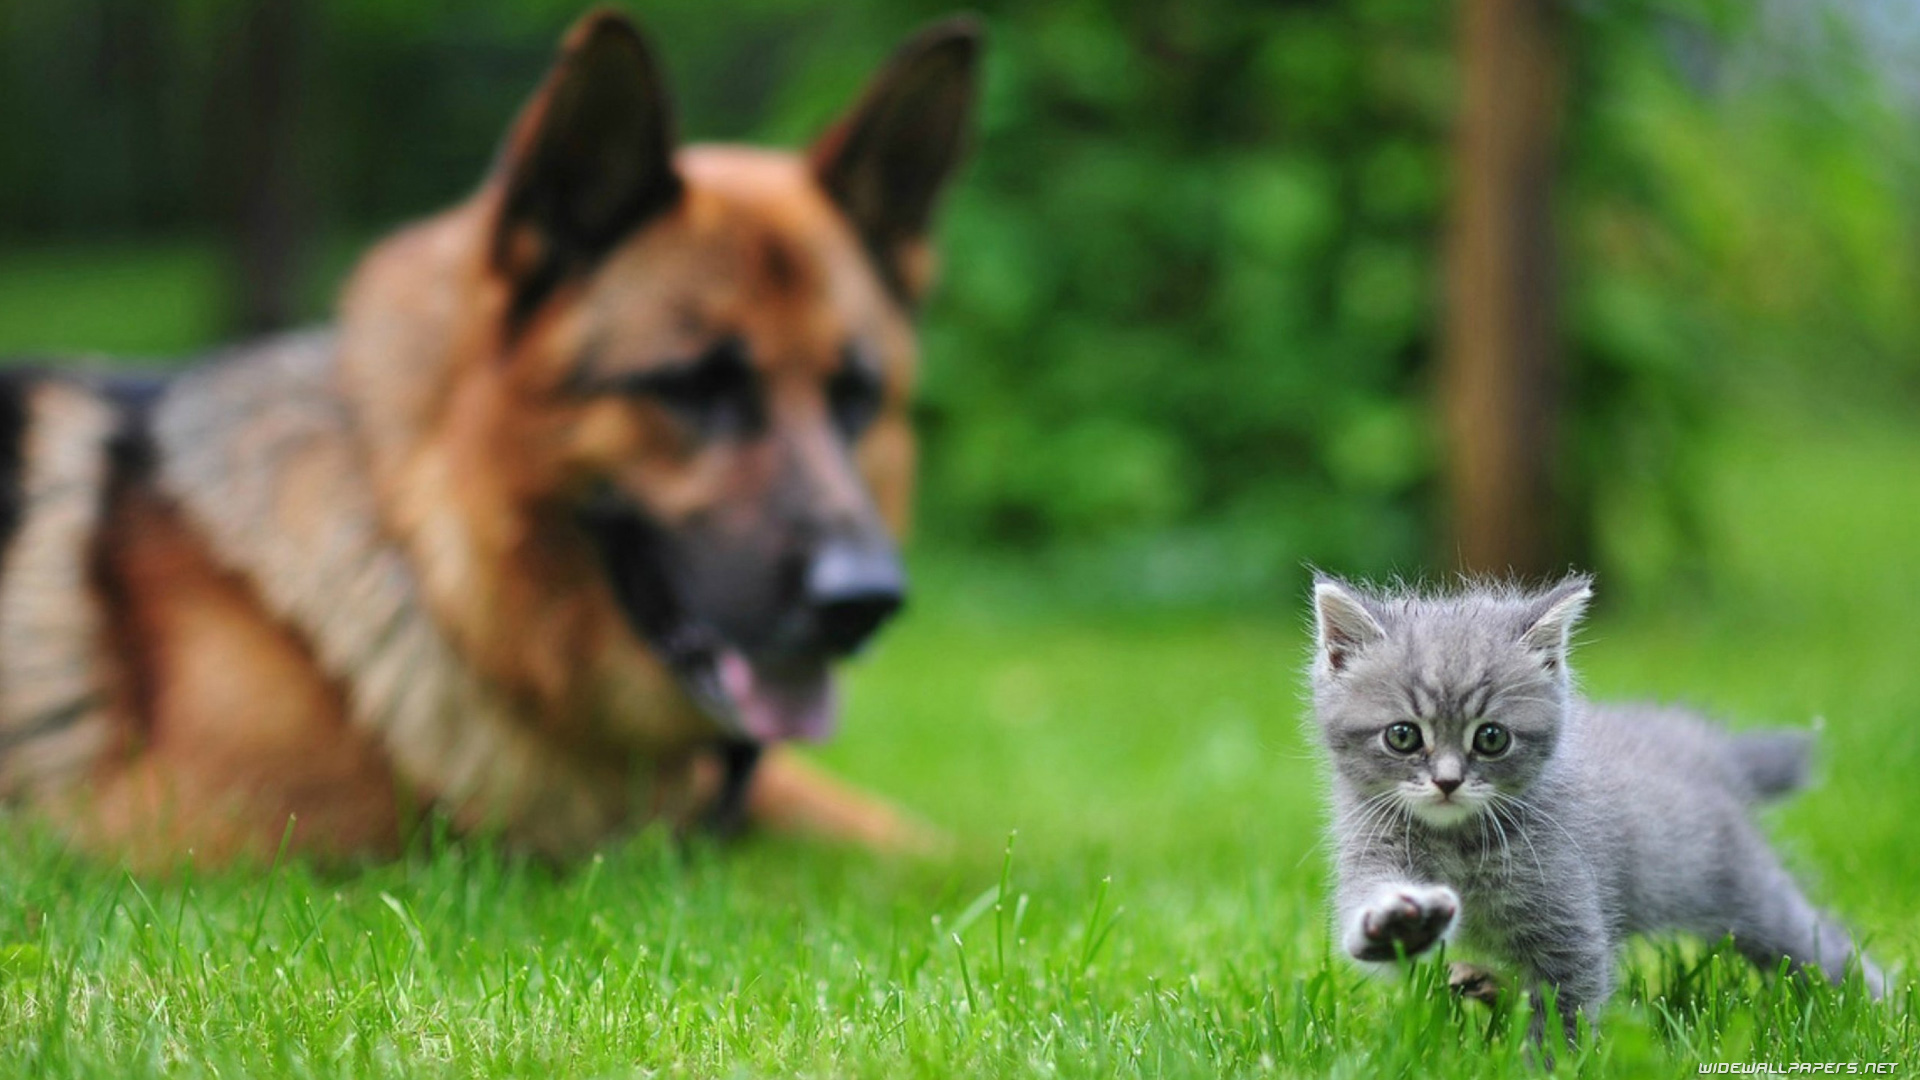 Cats and Dogs desktop wallpapers HD and wide wallpapers 1920x1080